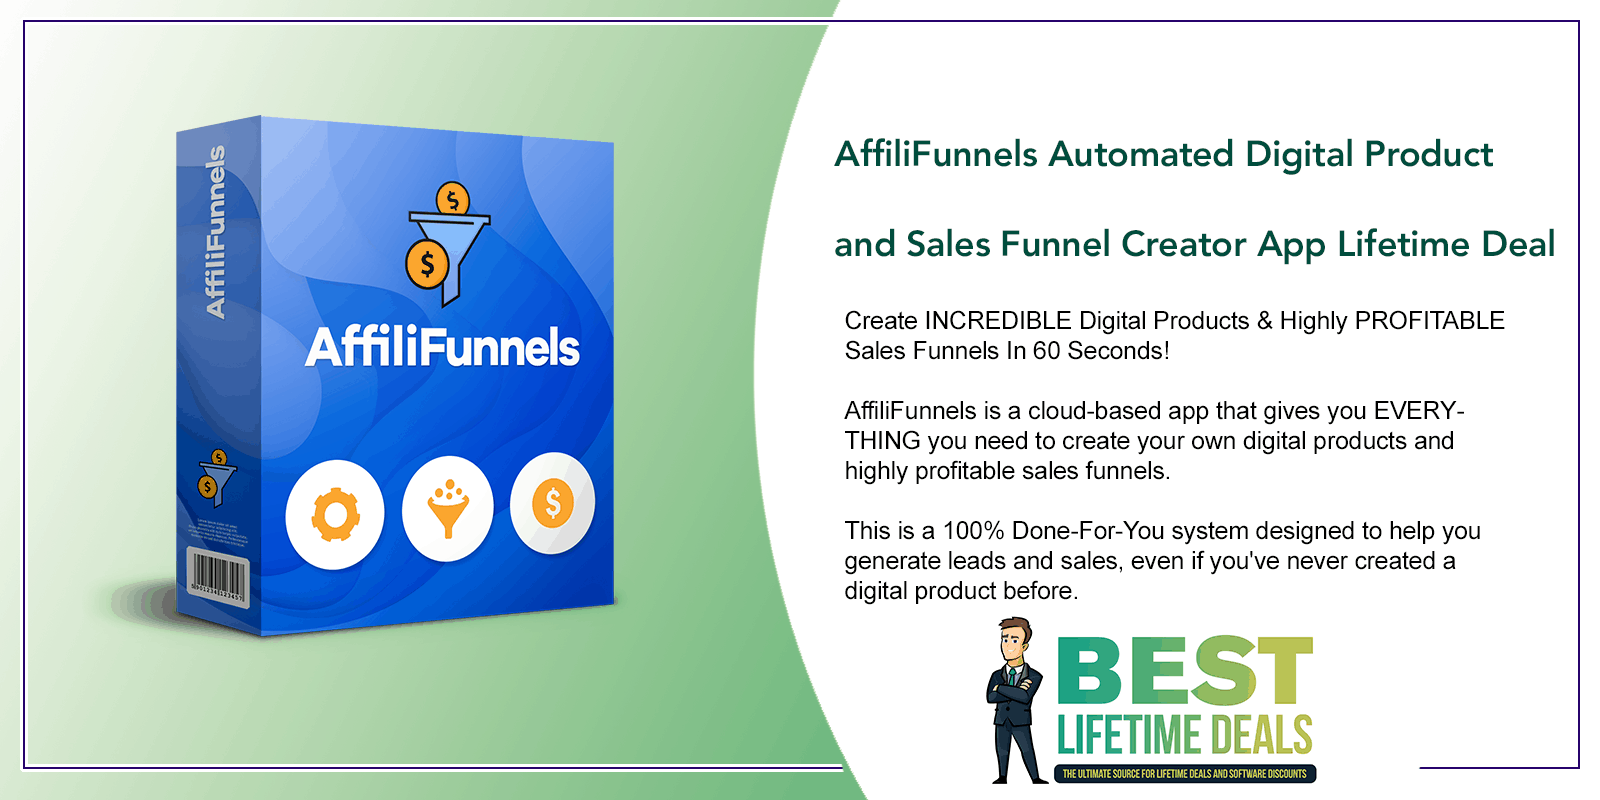 AffiliFunnels PRO Automated Digital Product and Sales Funnel Creator App Featured Image